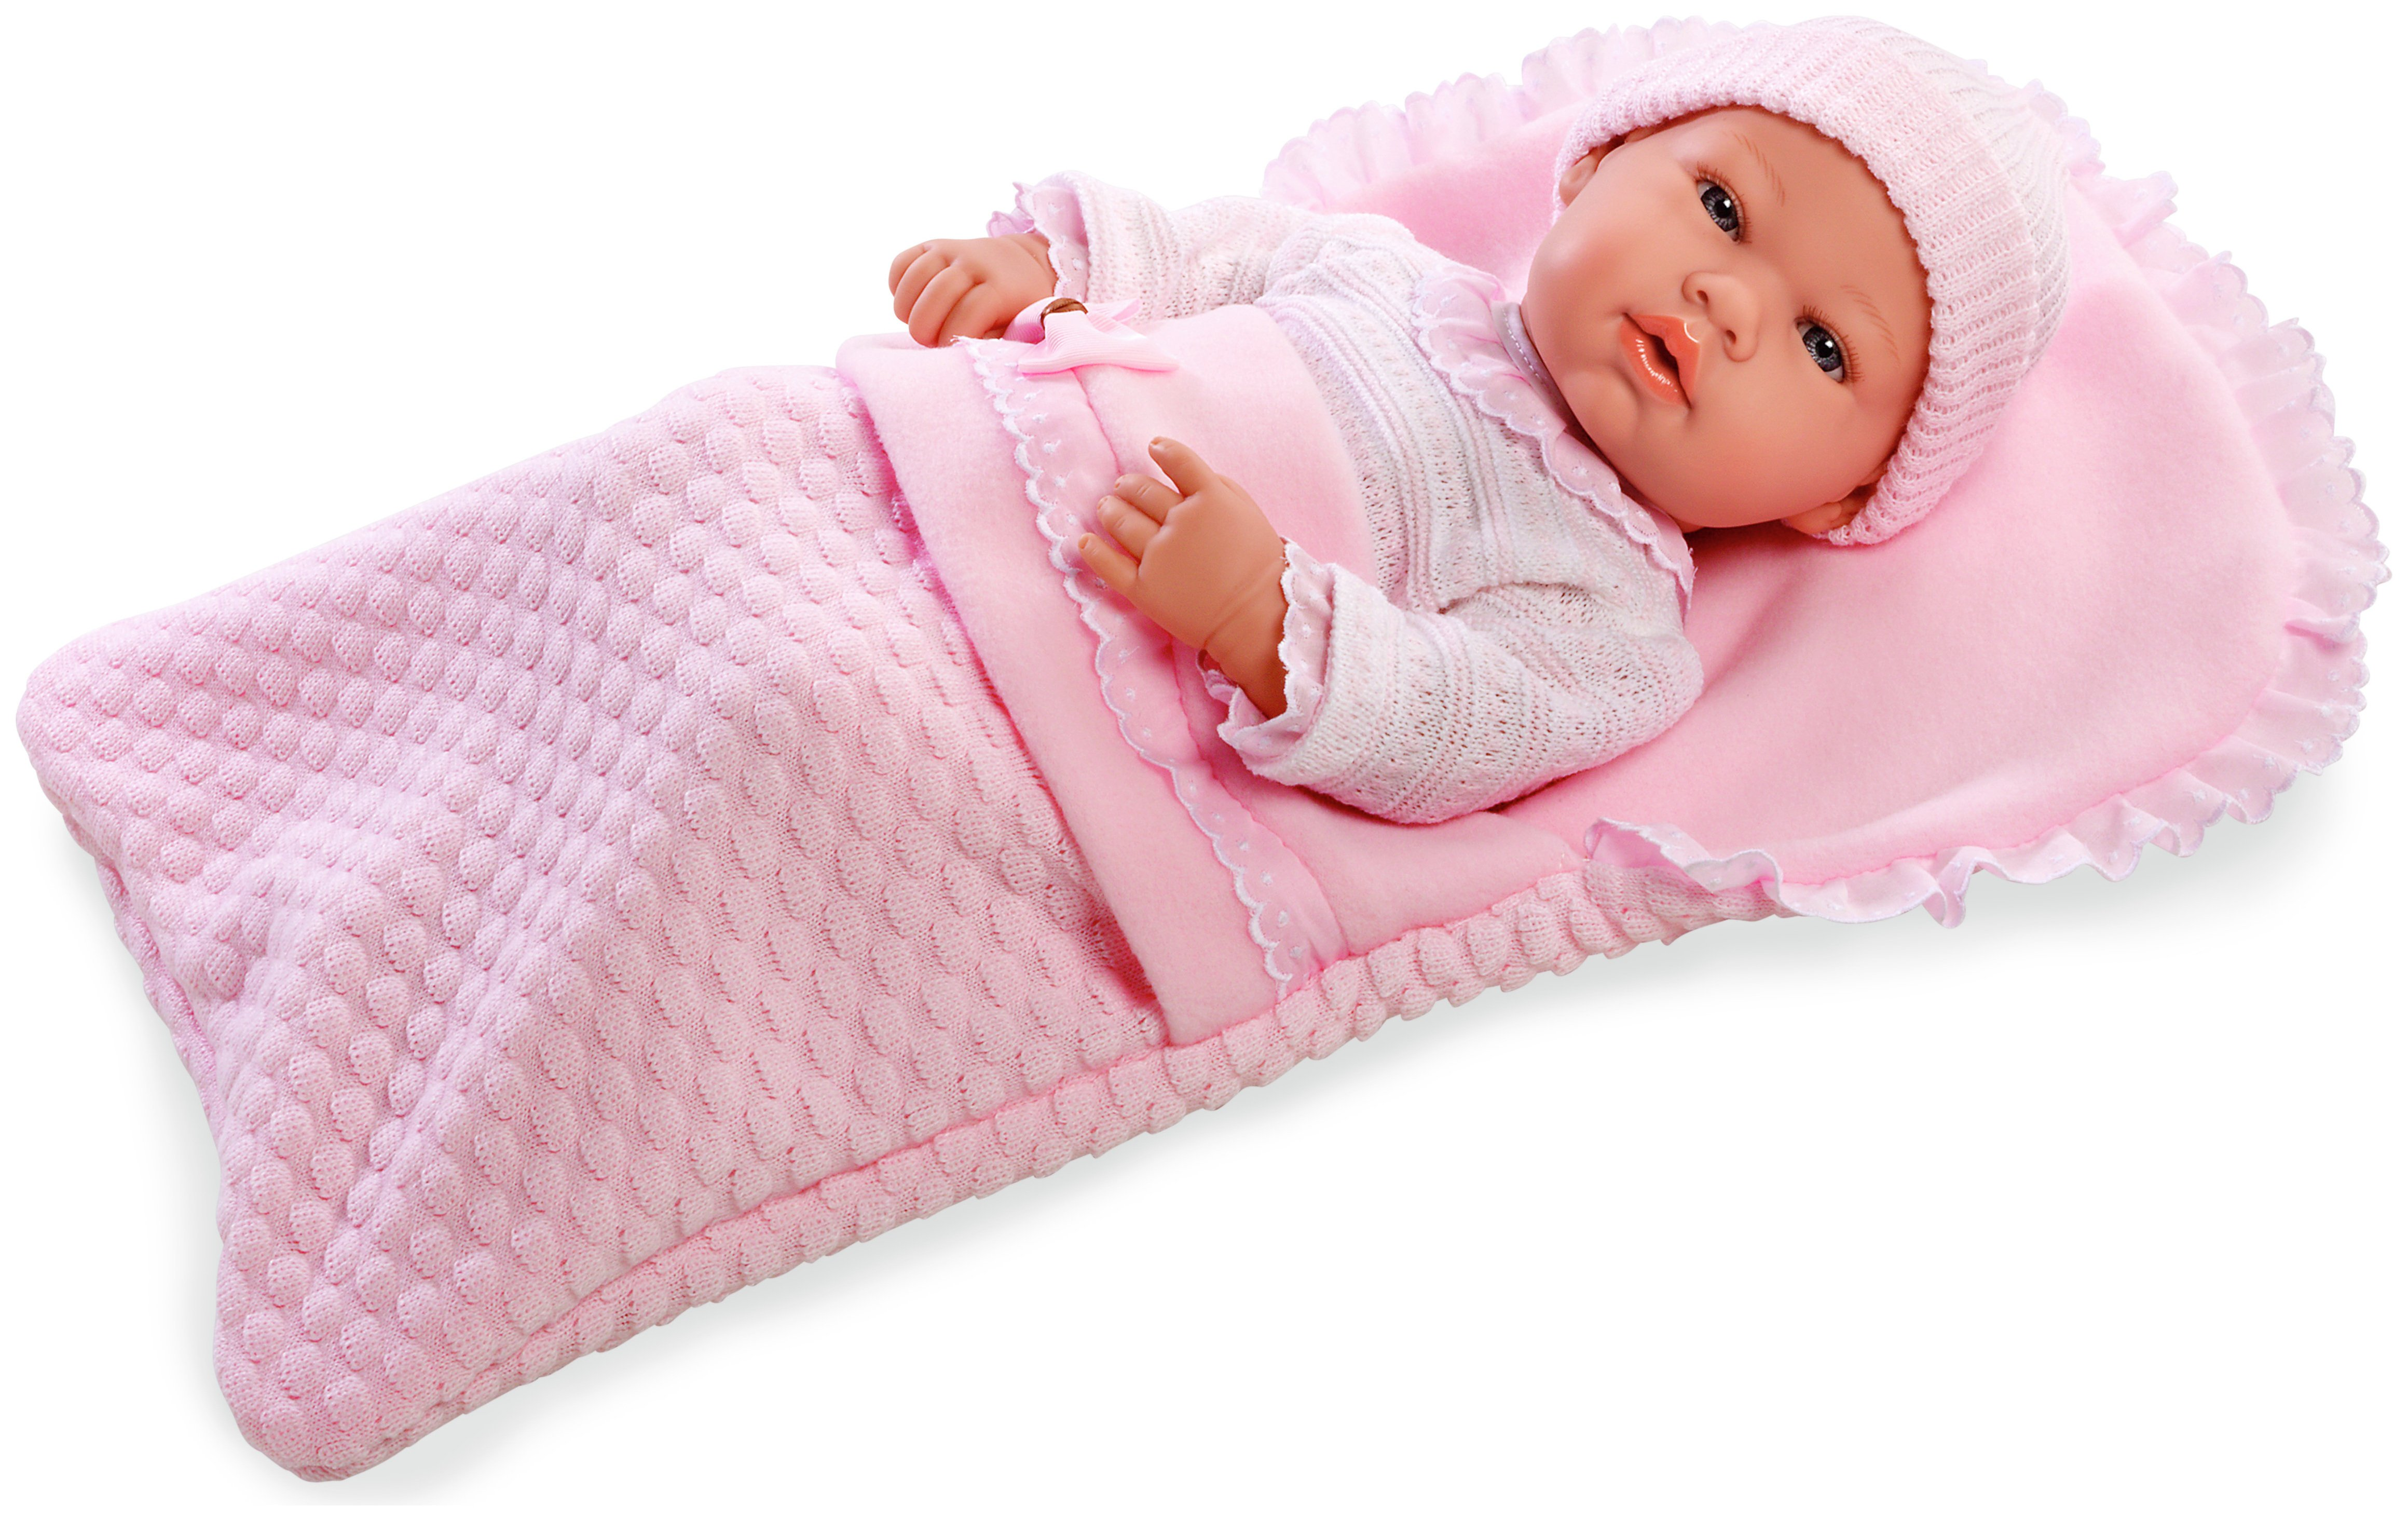 Image of Arias Elegance Baby Doll with Sleeping Bag.